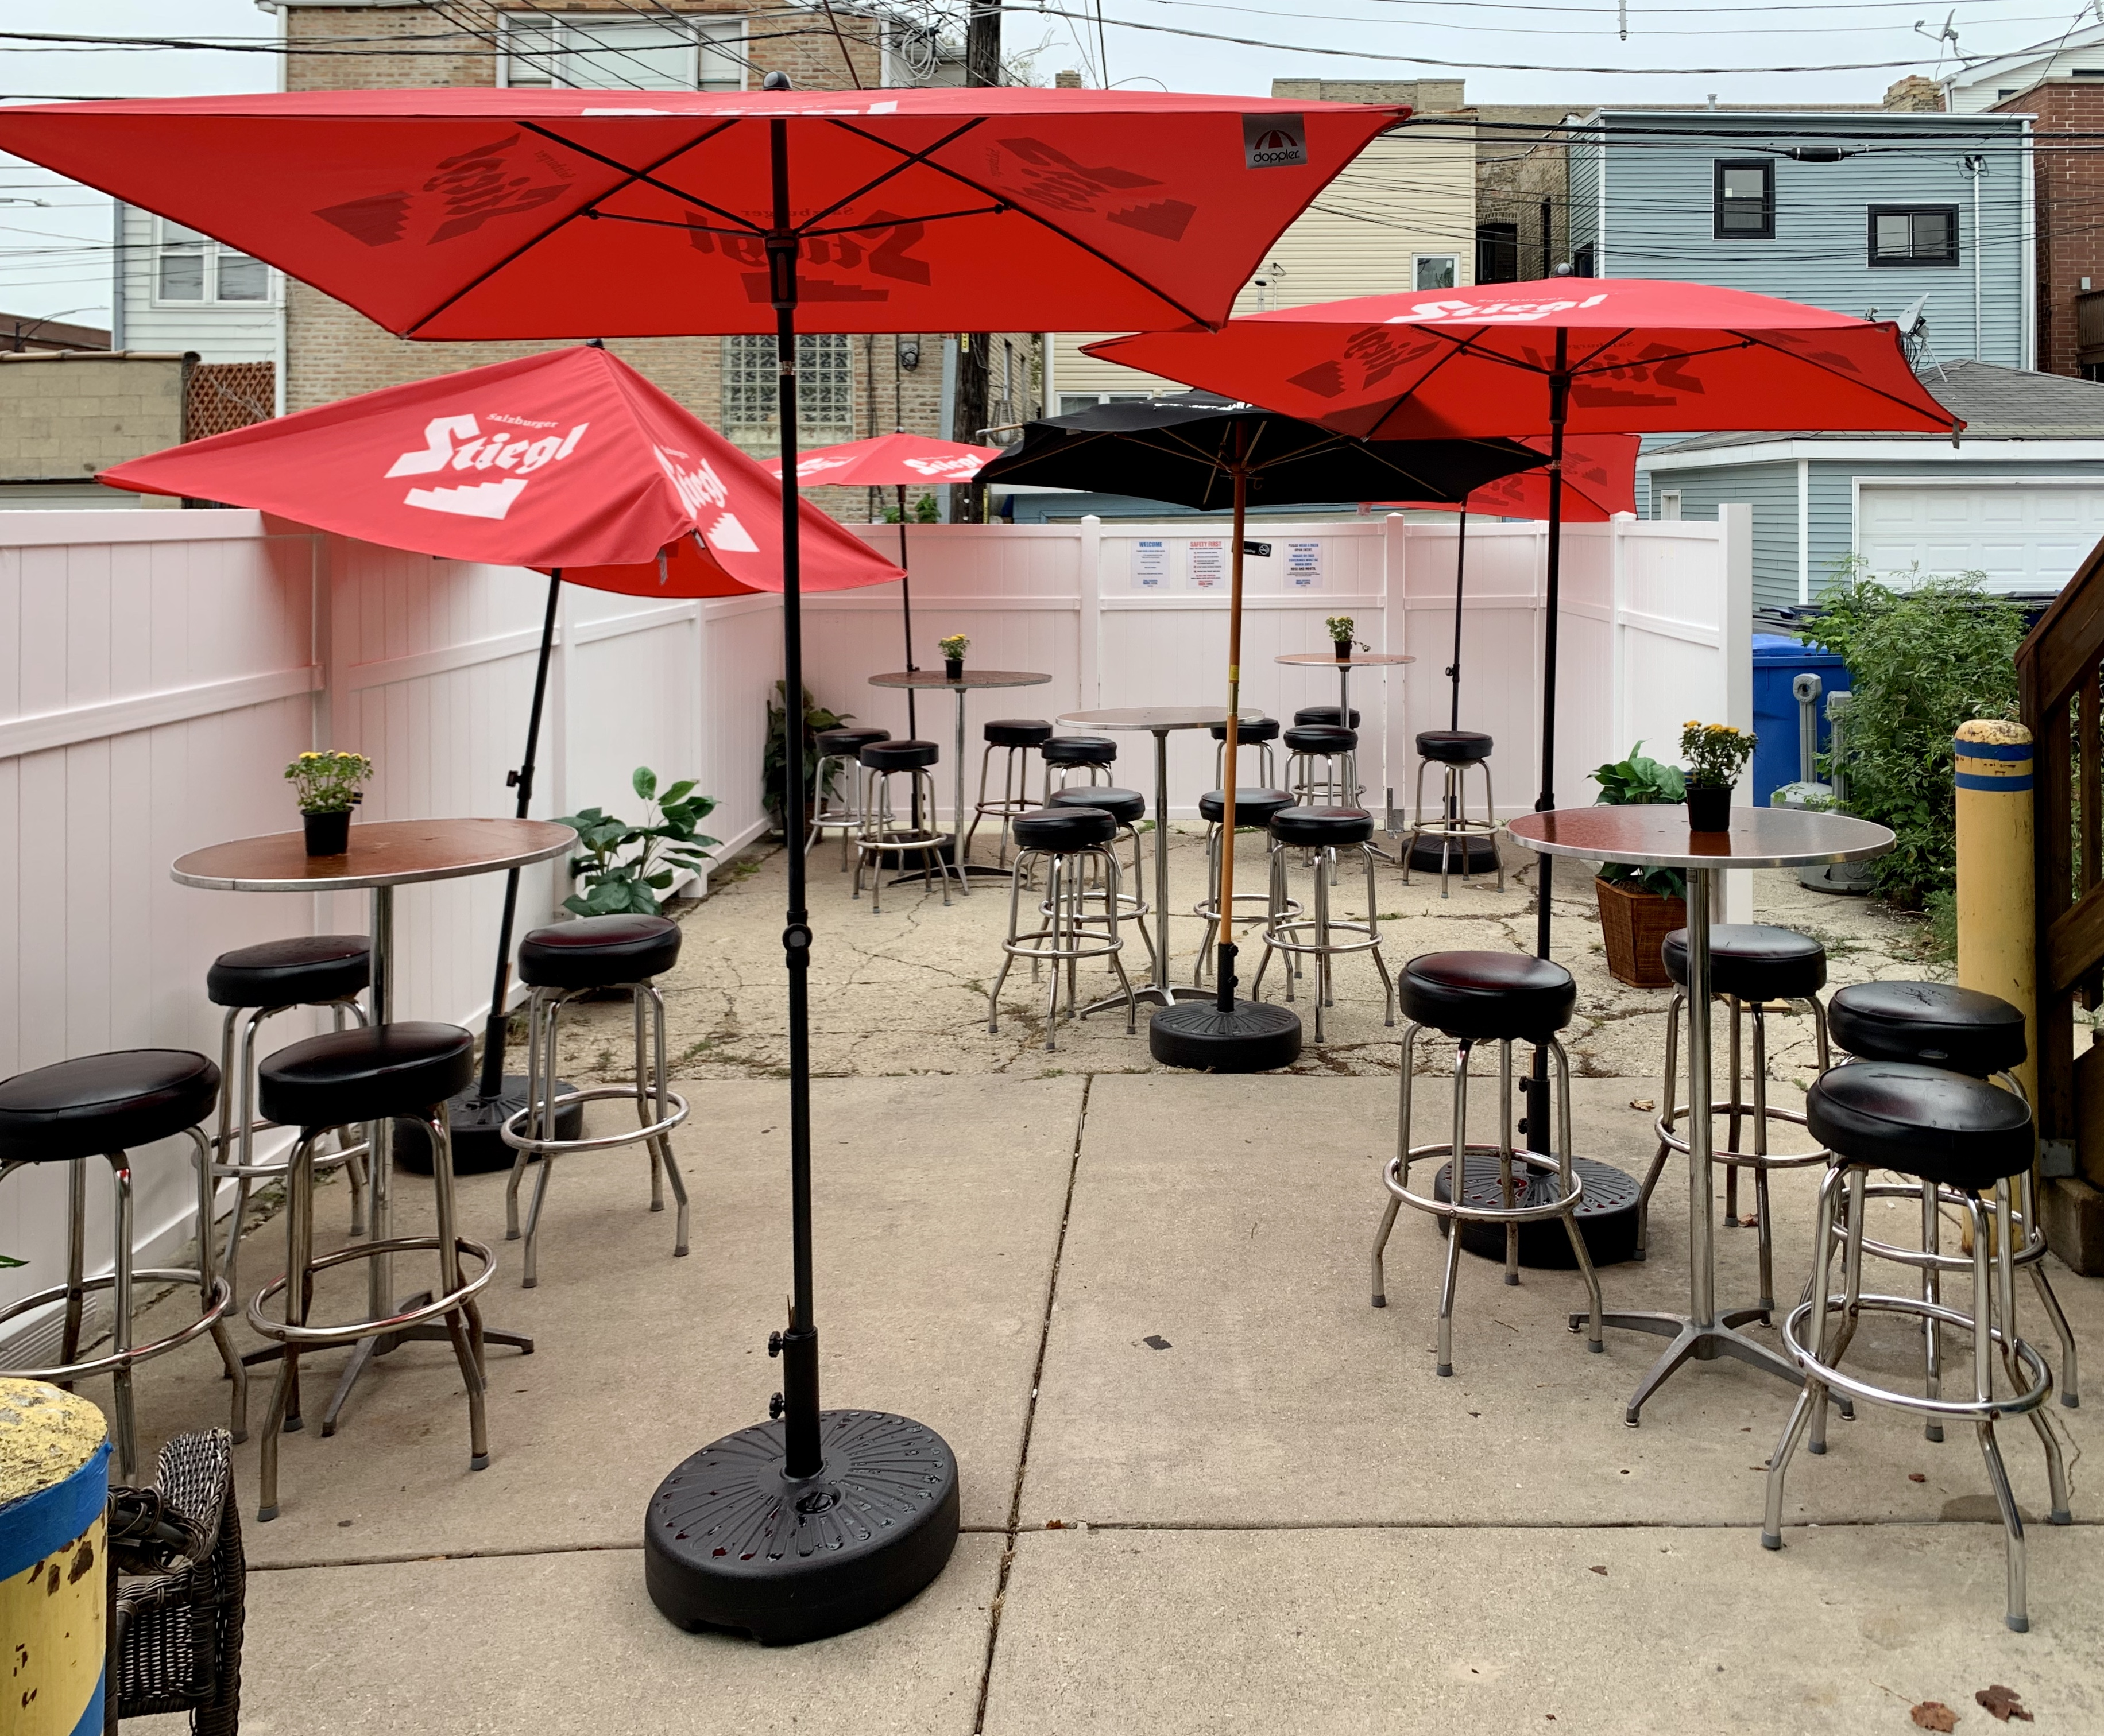 A small paved outdoor patio with tables and stools